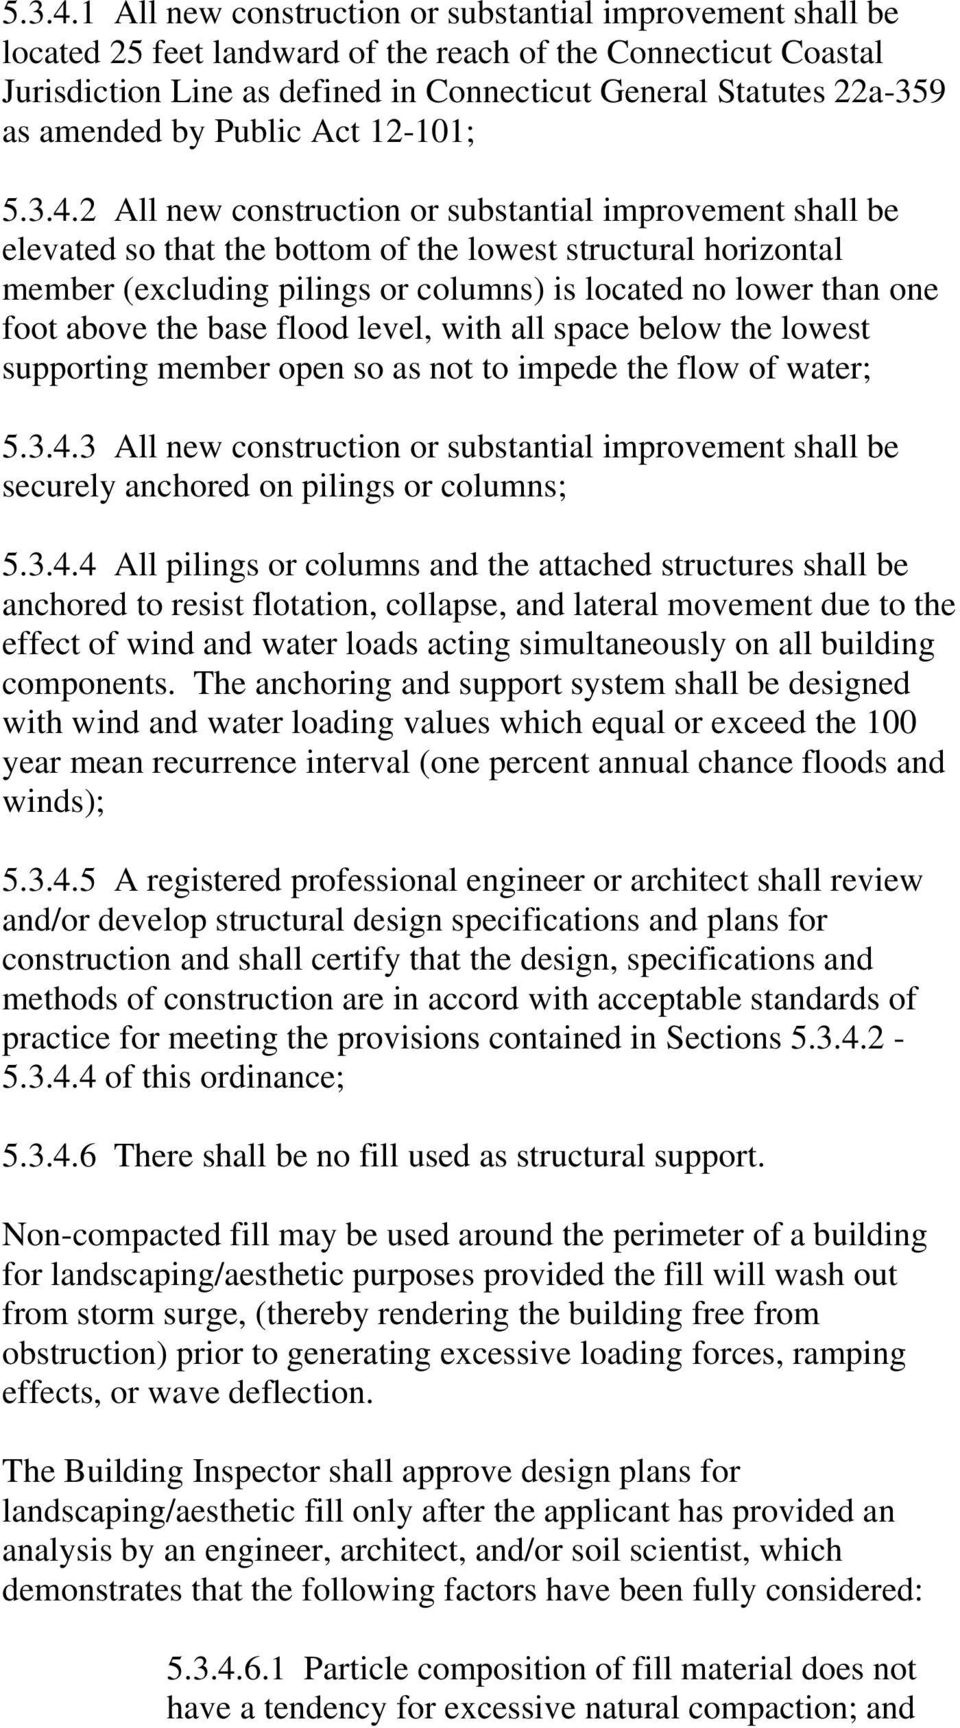 amended by Public Act 12-101; 2 All new construction or substantial improvement shall be elevated so that the bottom of the lowest structural horizontal member (excluding pilings or columns) is